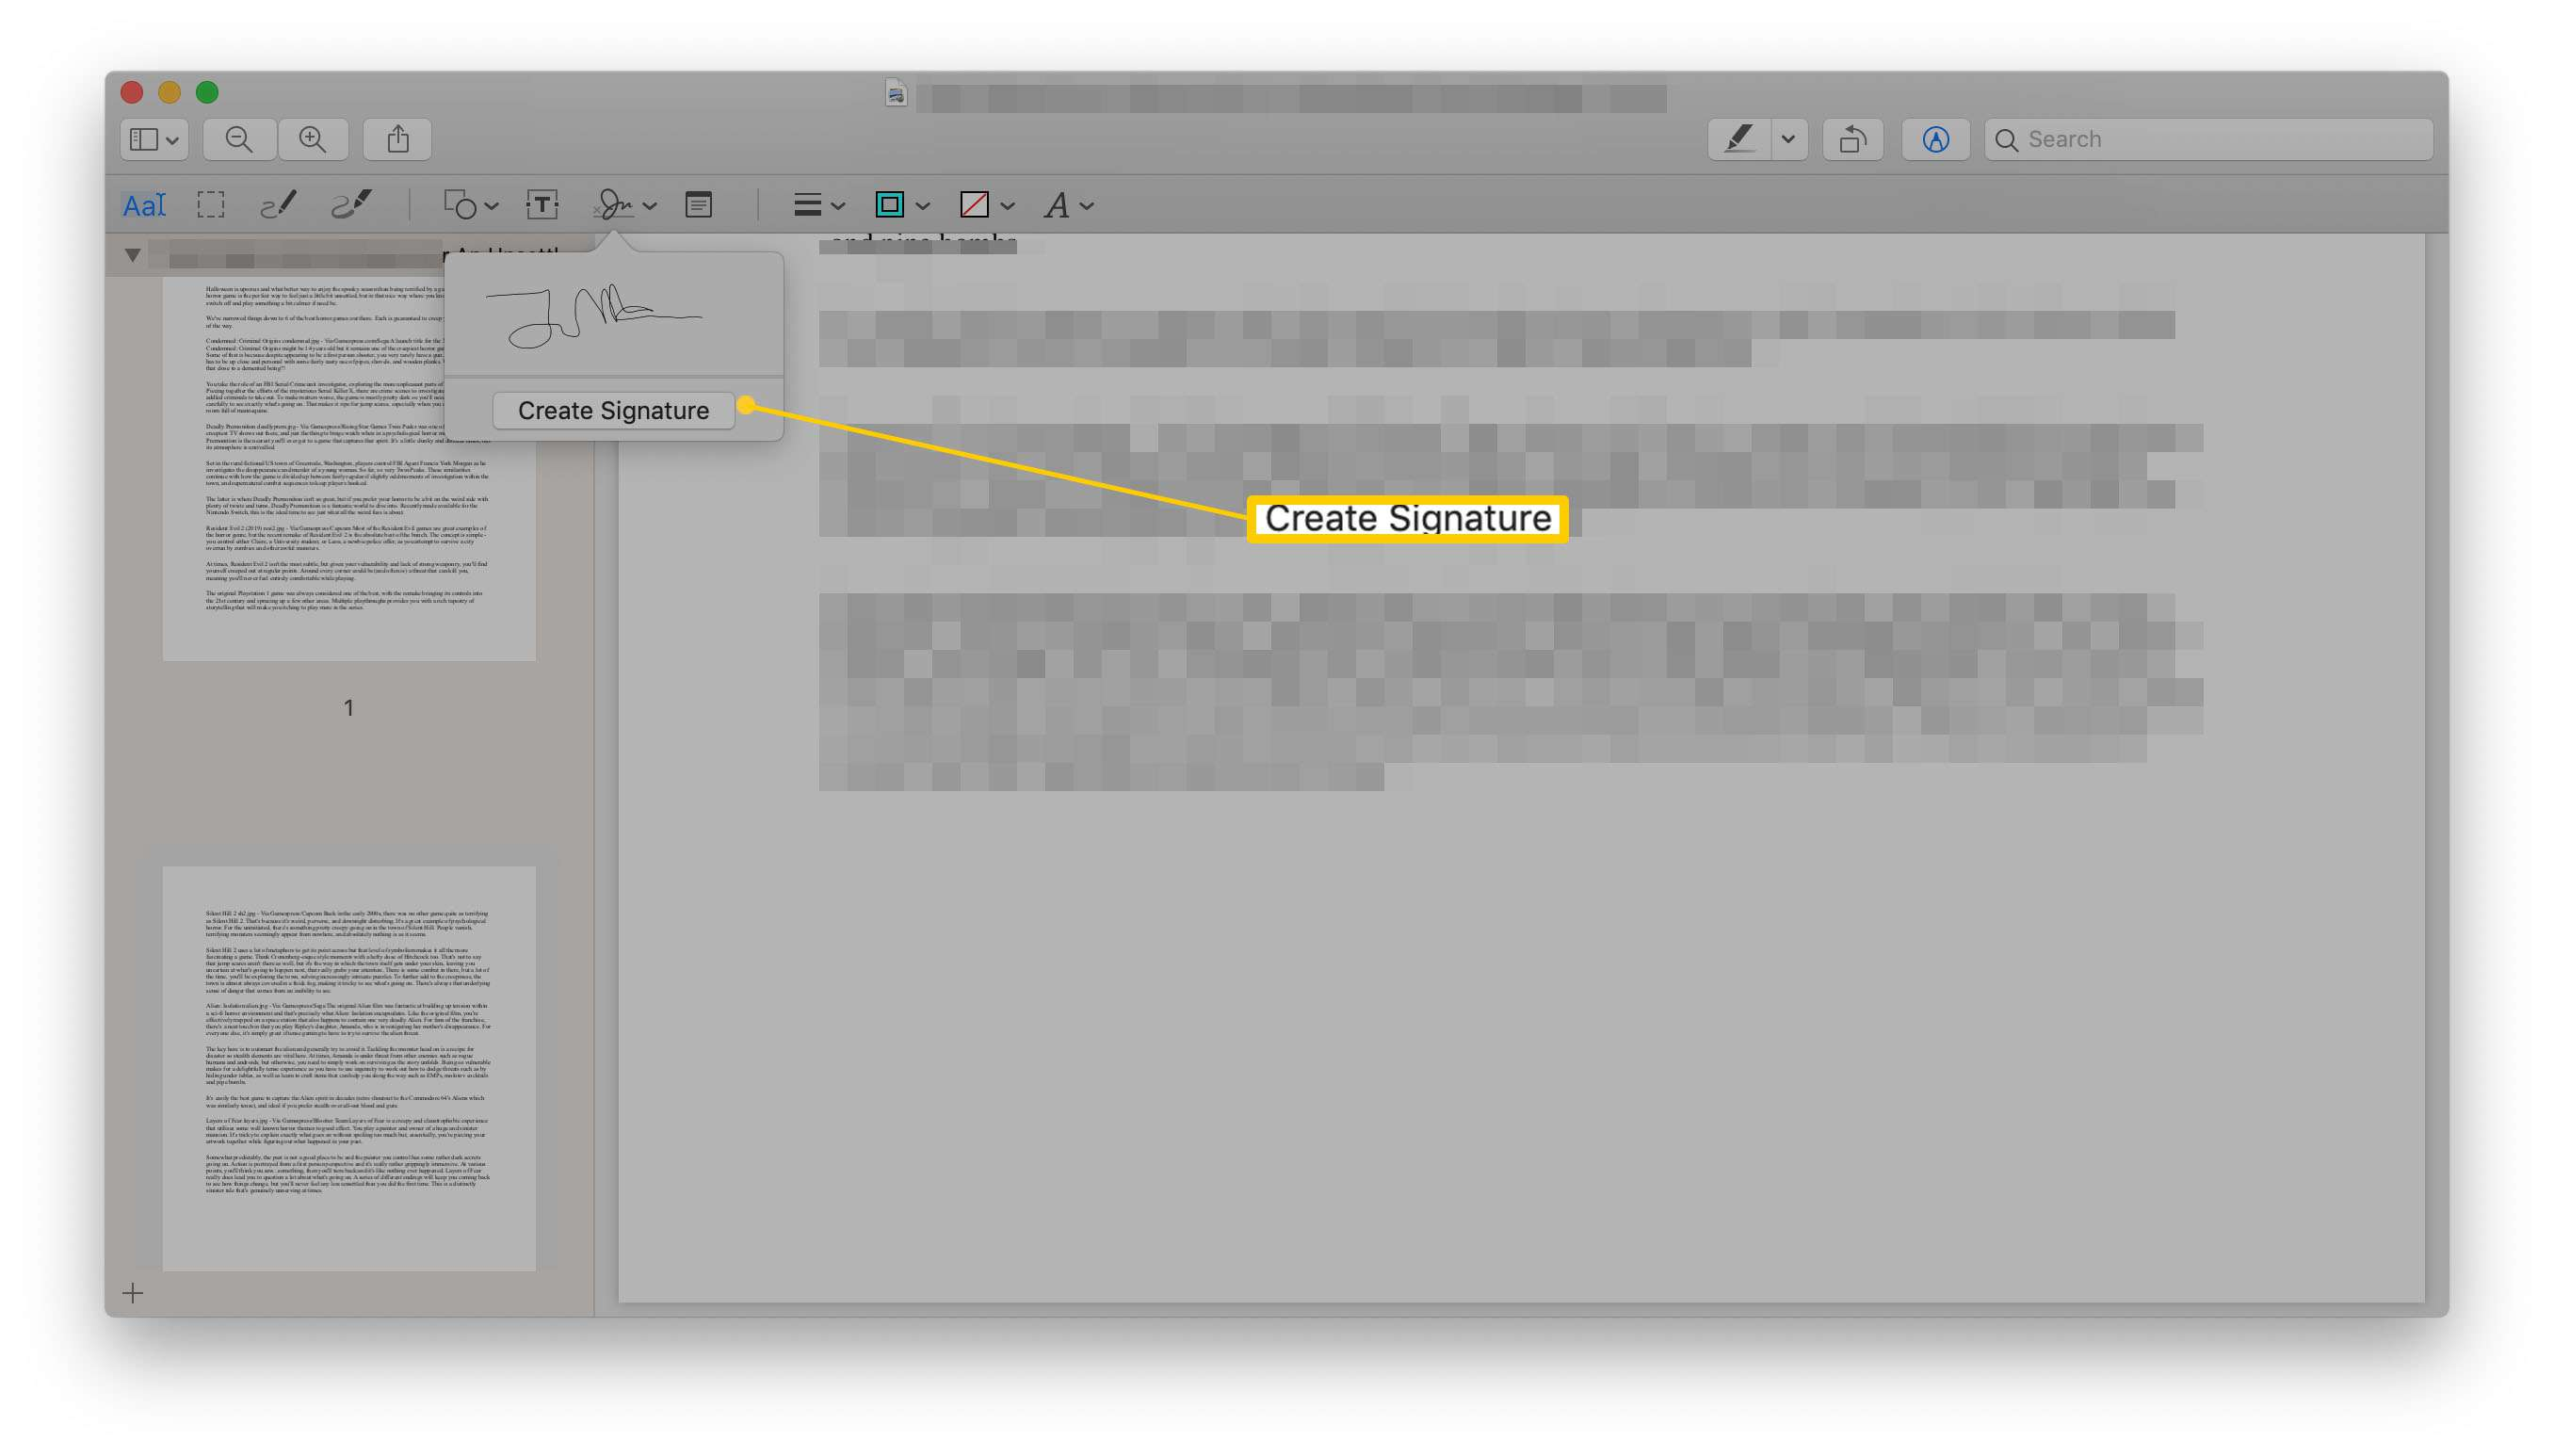 Preview app with Create Signature highlighted